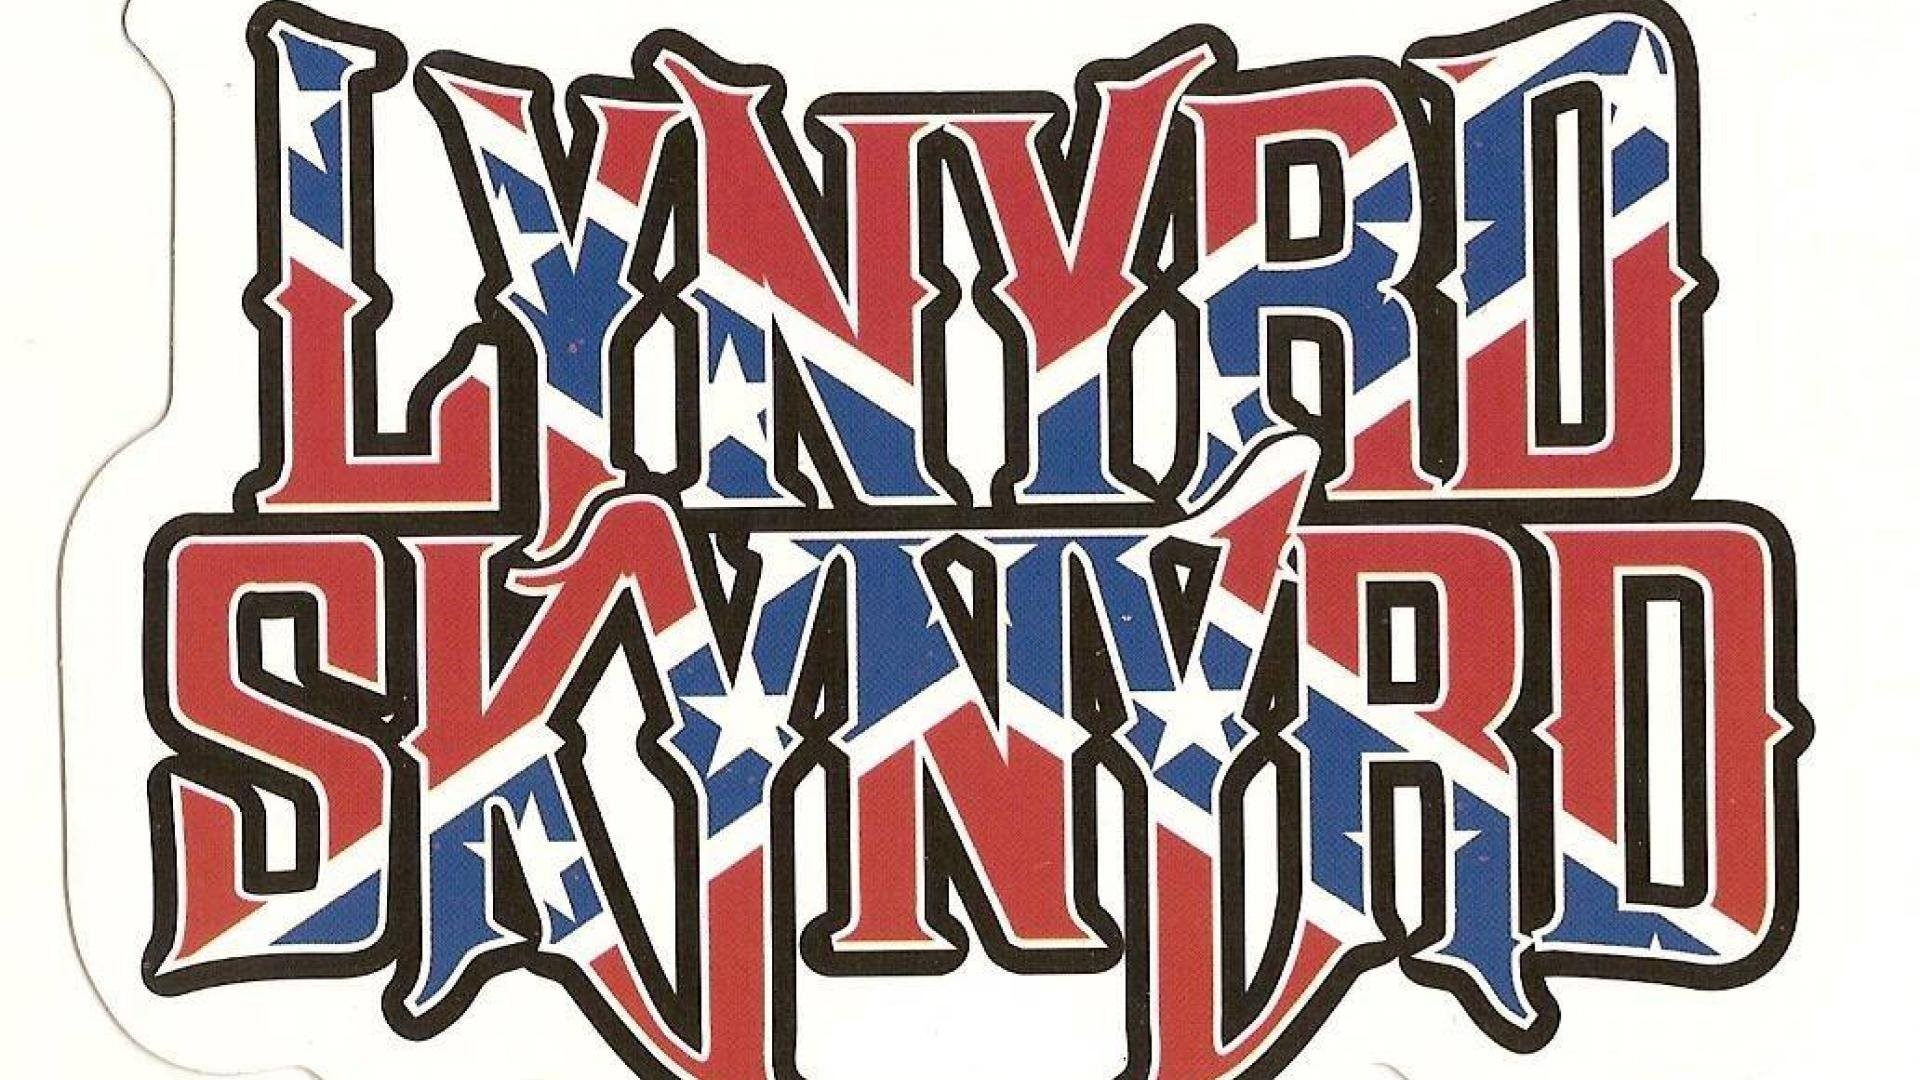 Lynyrd Skynyrd Music Bands Wallpapers Desktop Background